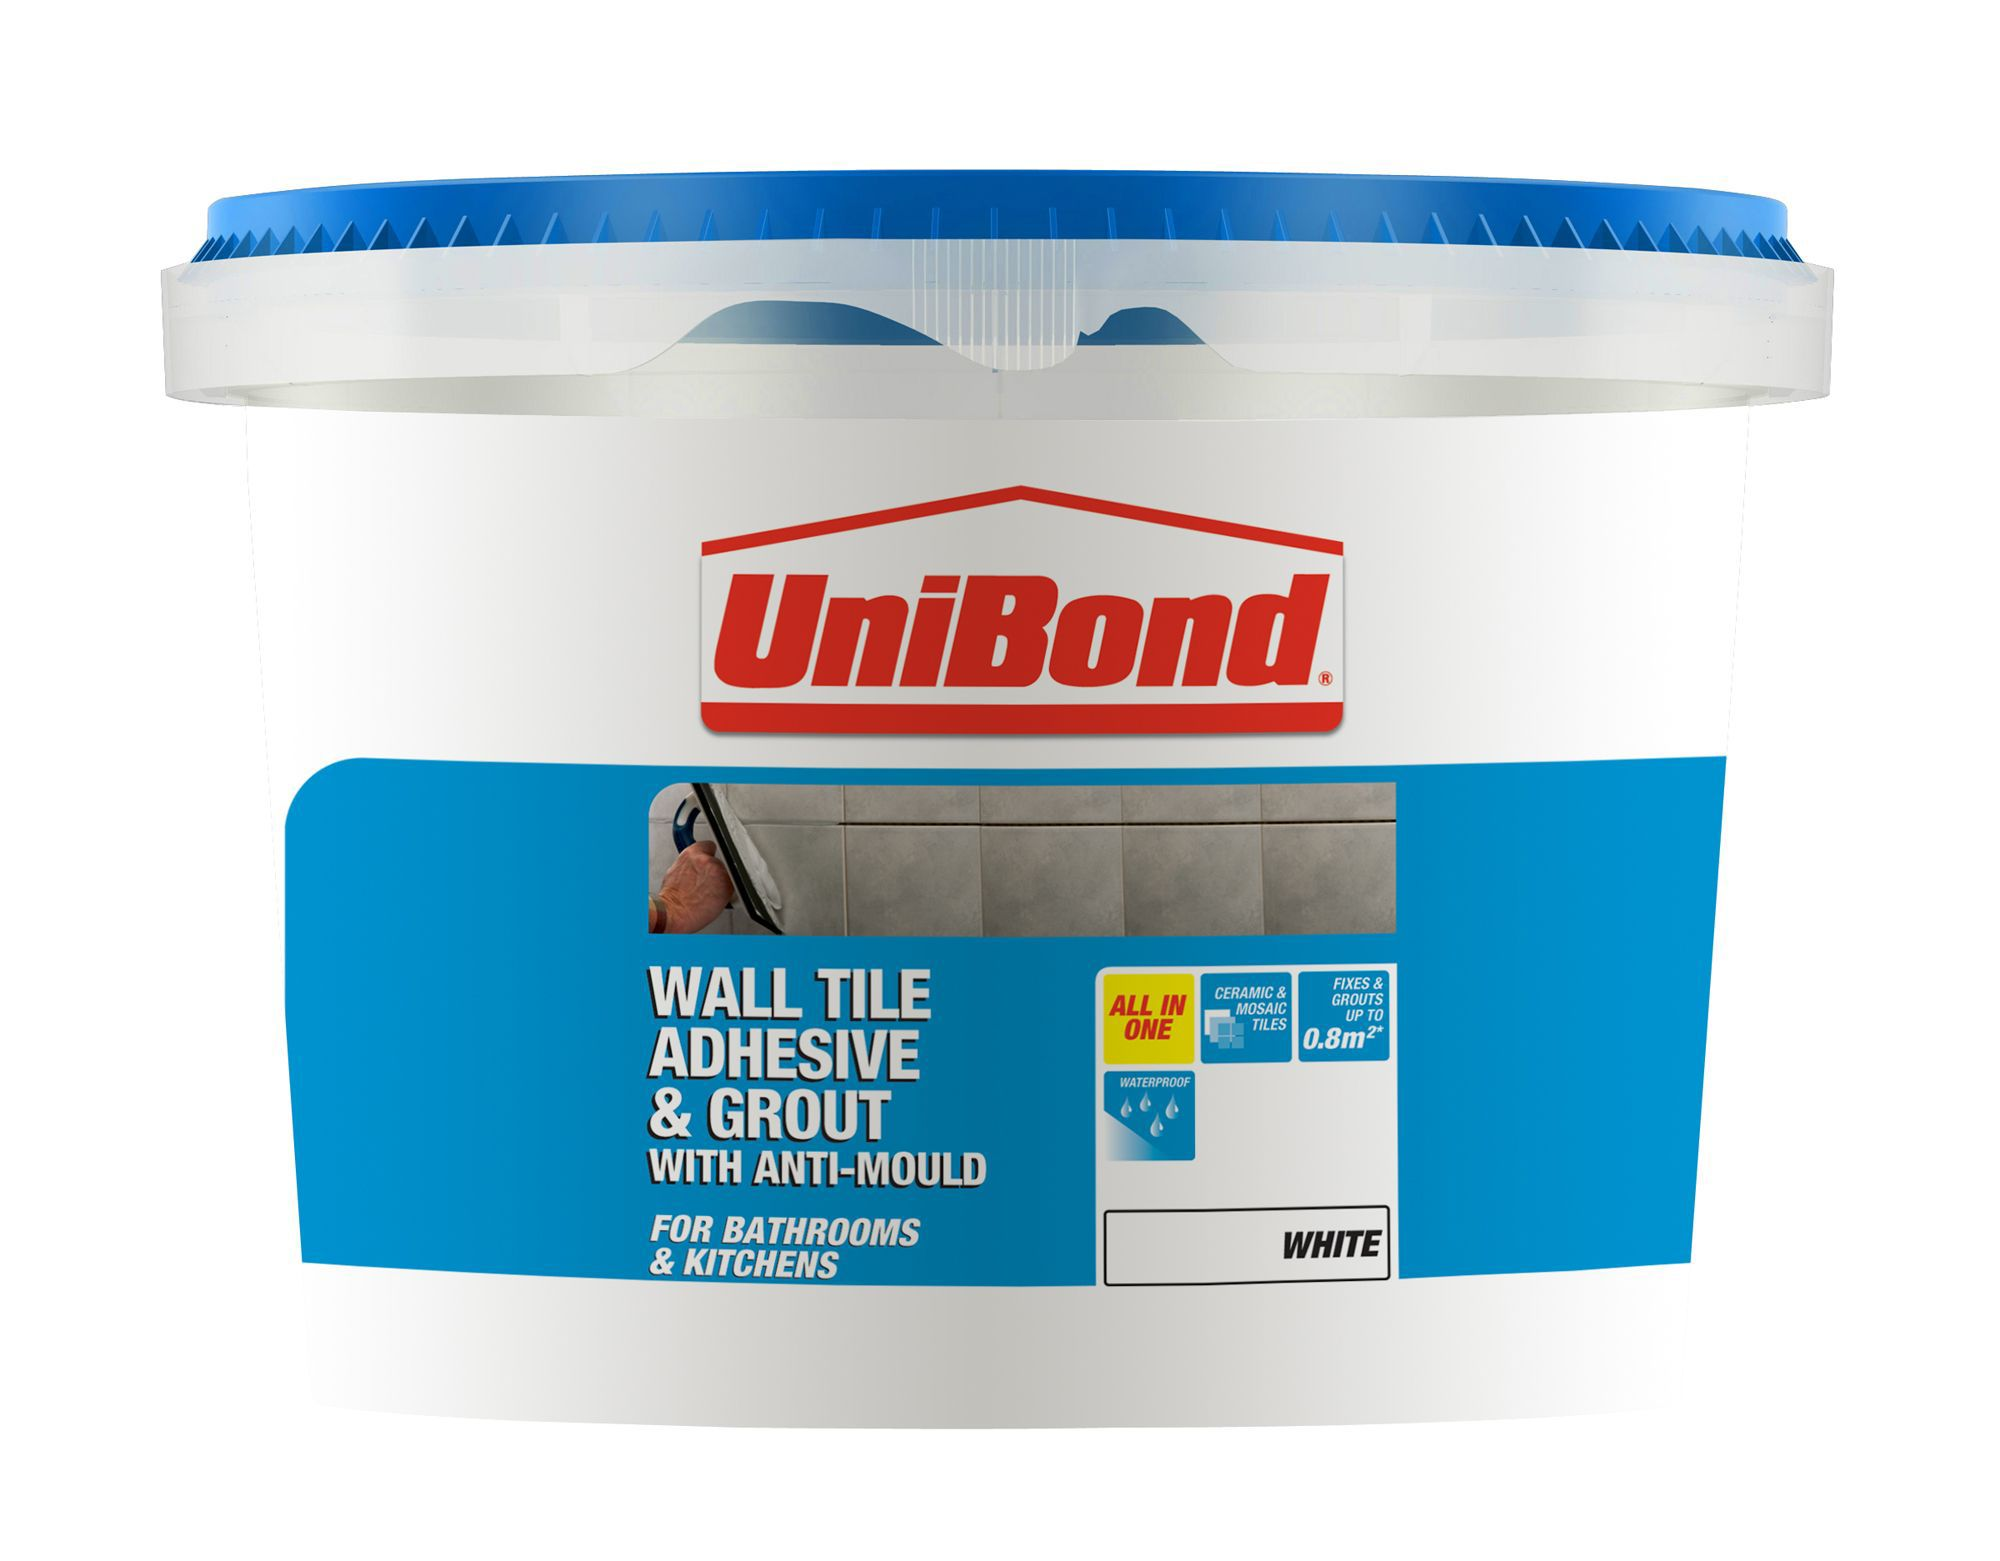 Diy at bq unibond ready to use wall tile adhesive grout white 138kg dailygadgetfo Gallery